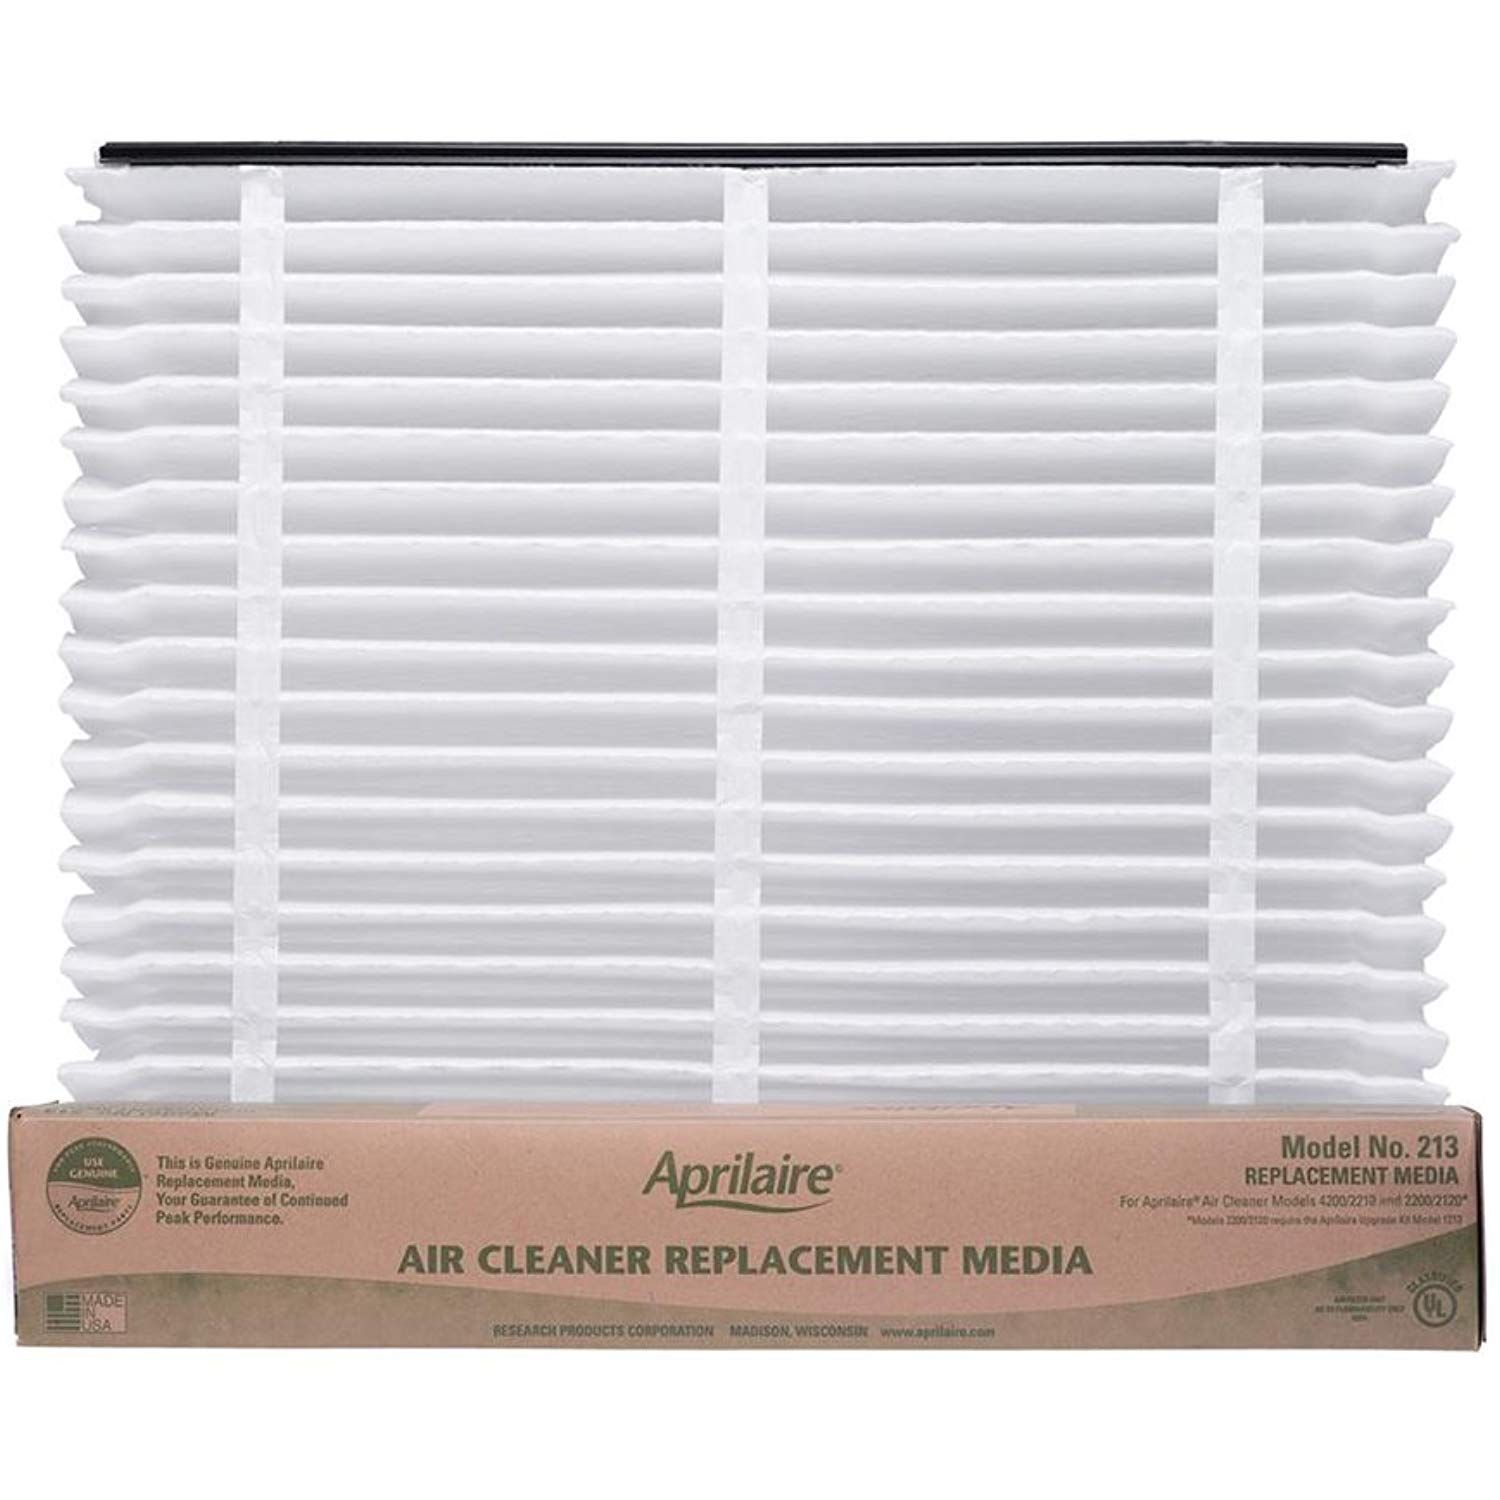 Aprilaire 213 Air Filter for Air Purifier Models 1210